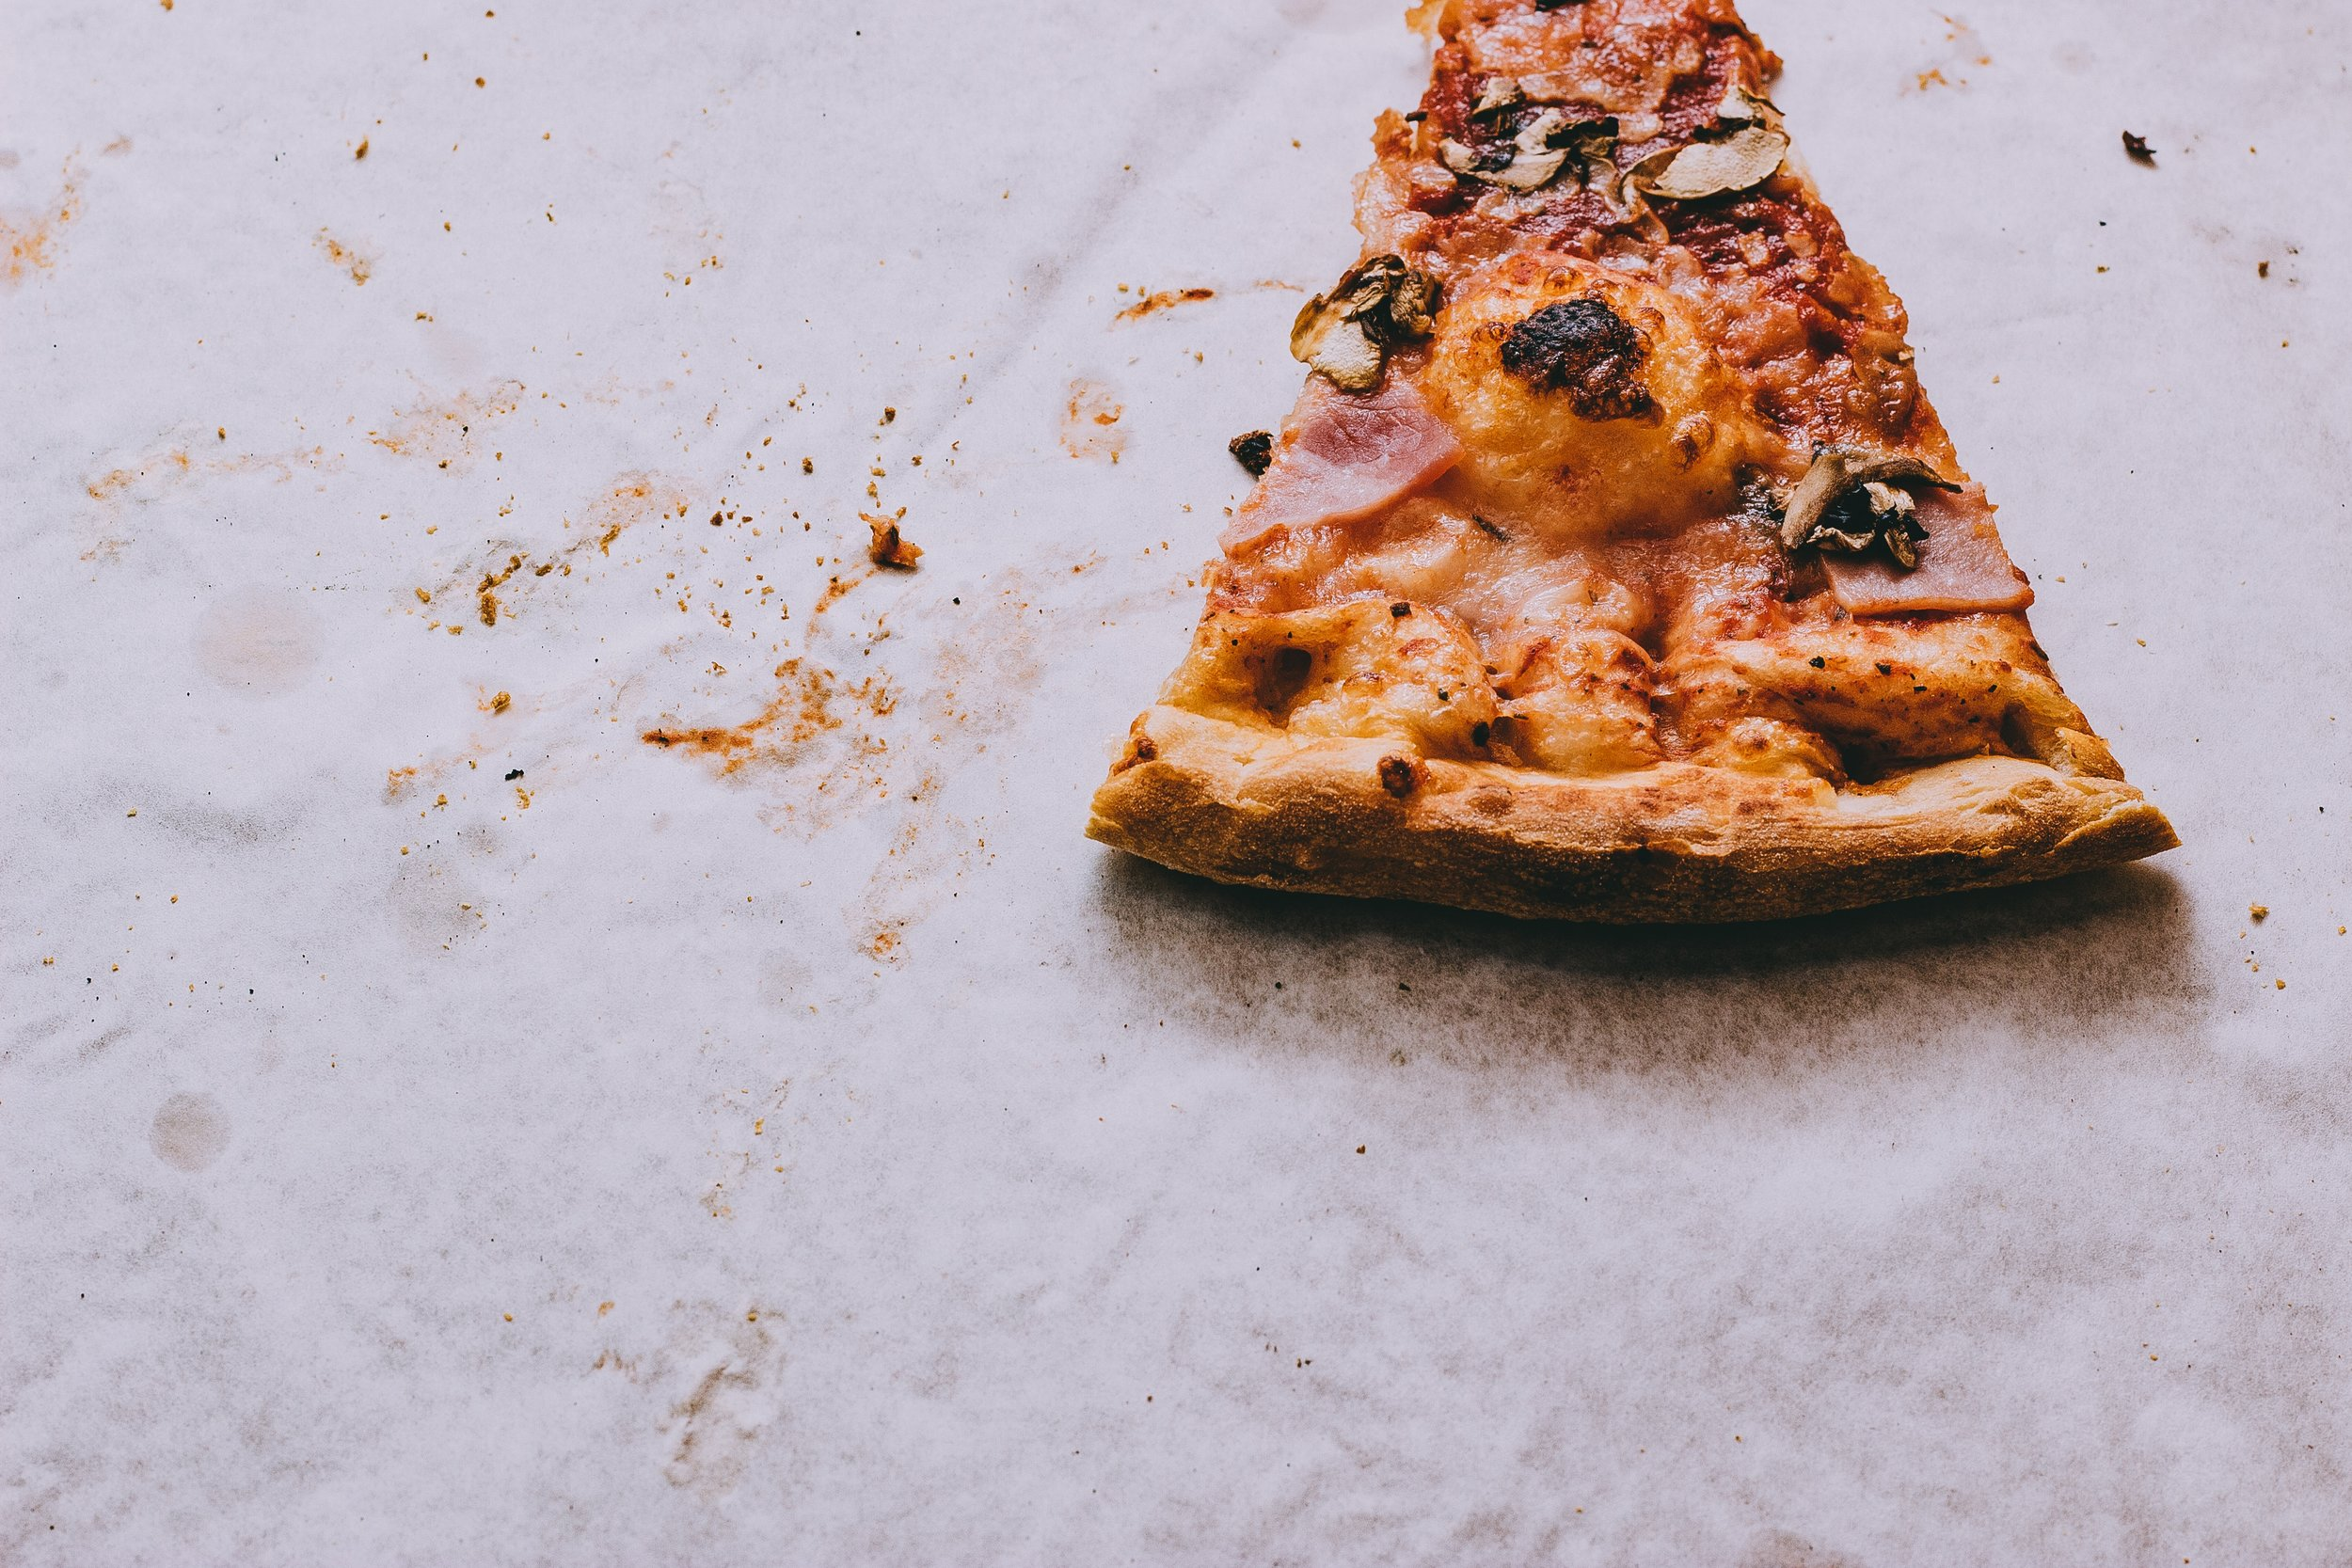 Let us cater your next event! - Pizza is a great option for any gathering. We can accommodate any dietary restrictions and also offer vegan cheese on our pizzas.See our catering menu below for sandwiches, salads, and other entrees that pair well with pizza.